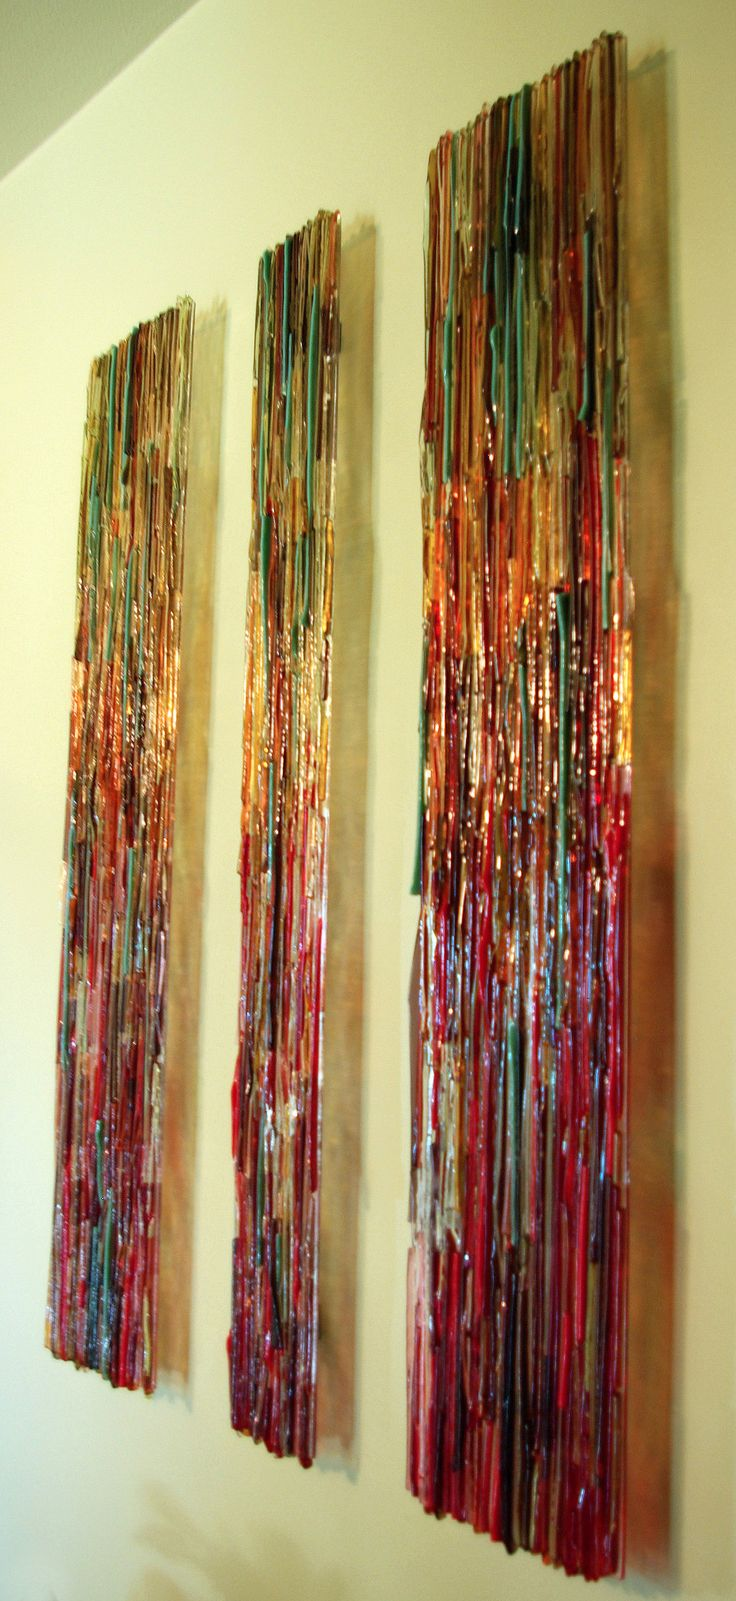 Wall Art Fused Glass : Transpire wall panels sarinda jones art glass